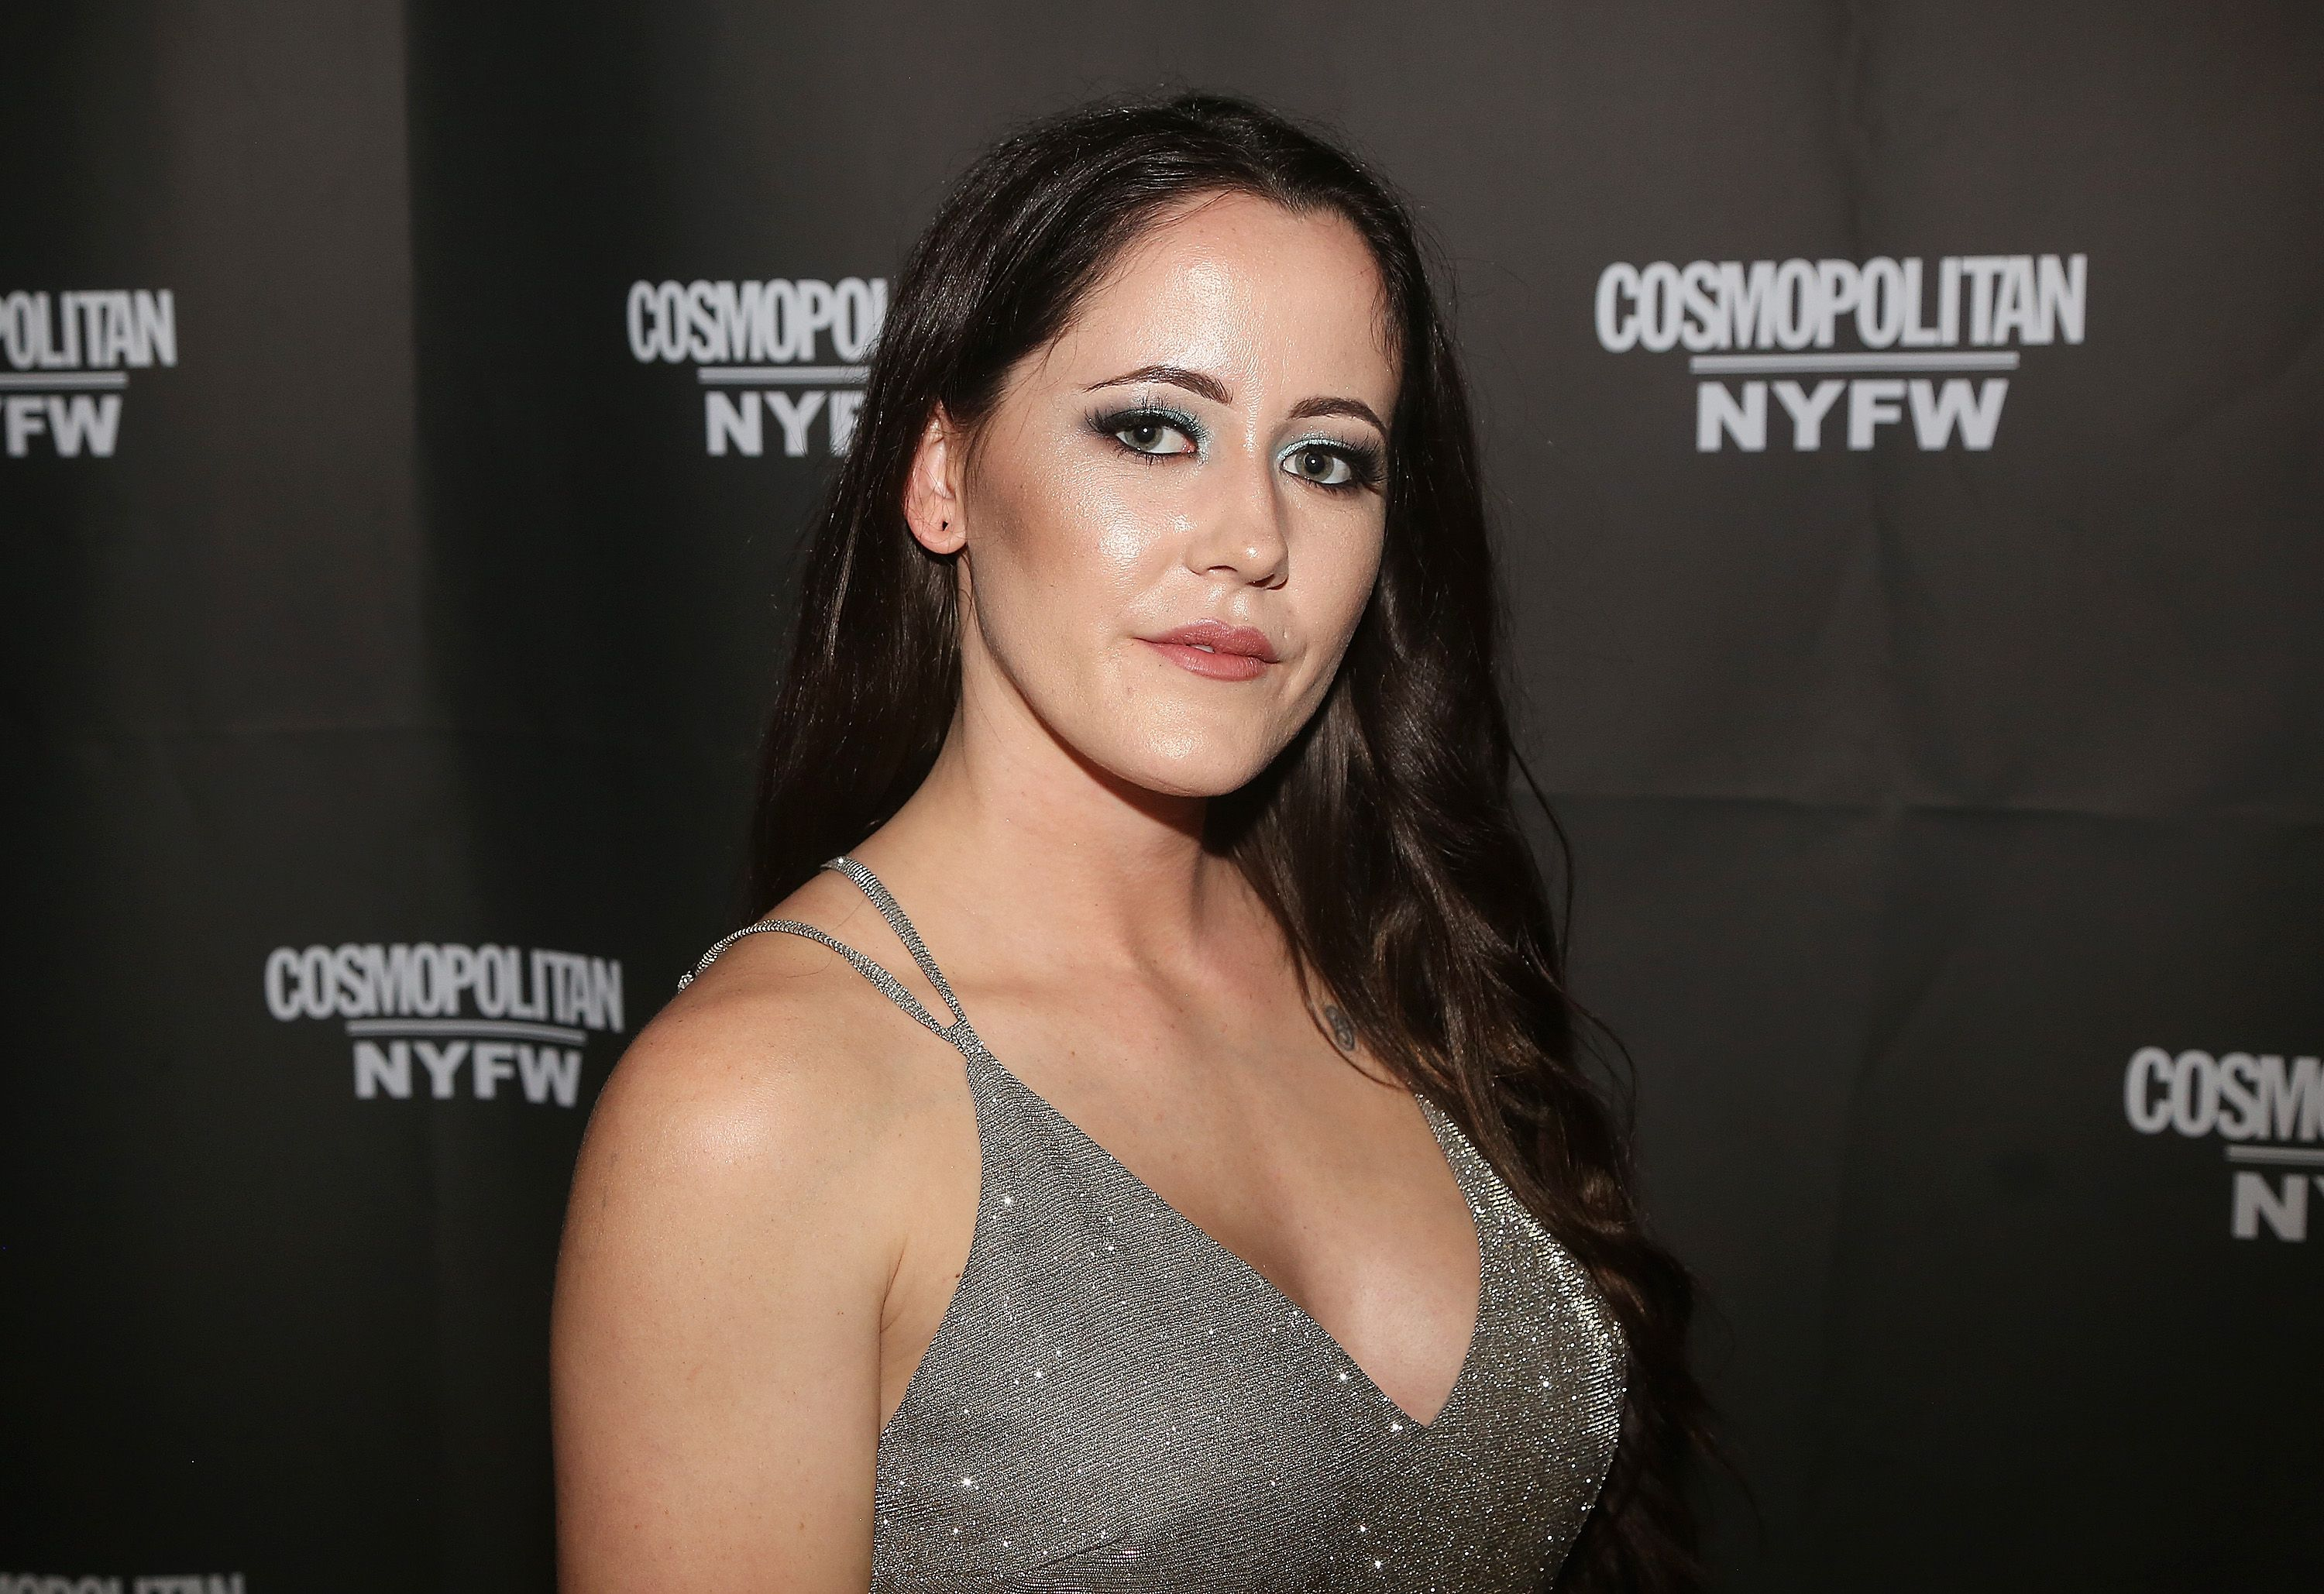 Jenelle Evans looks gorgeous in this shimmery outfit for a night event.